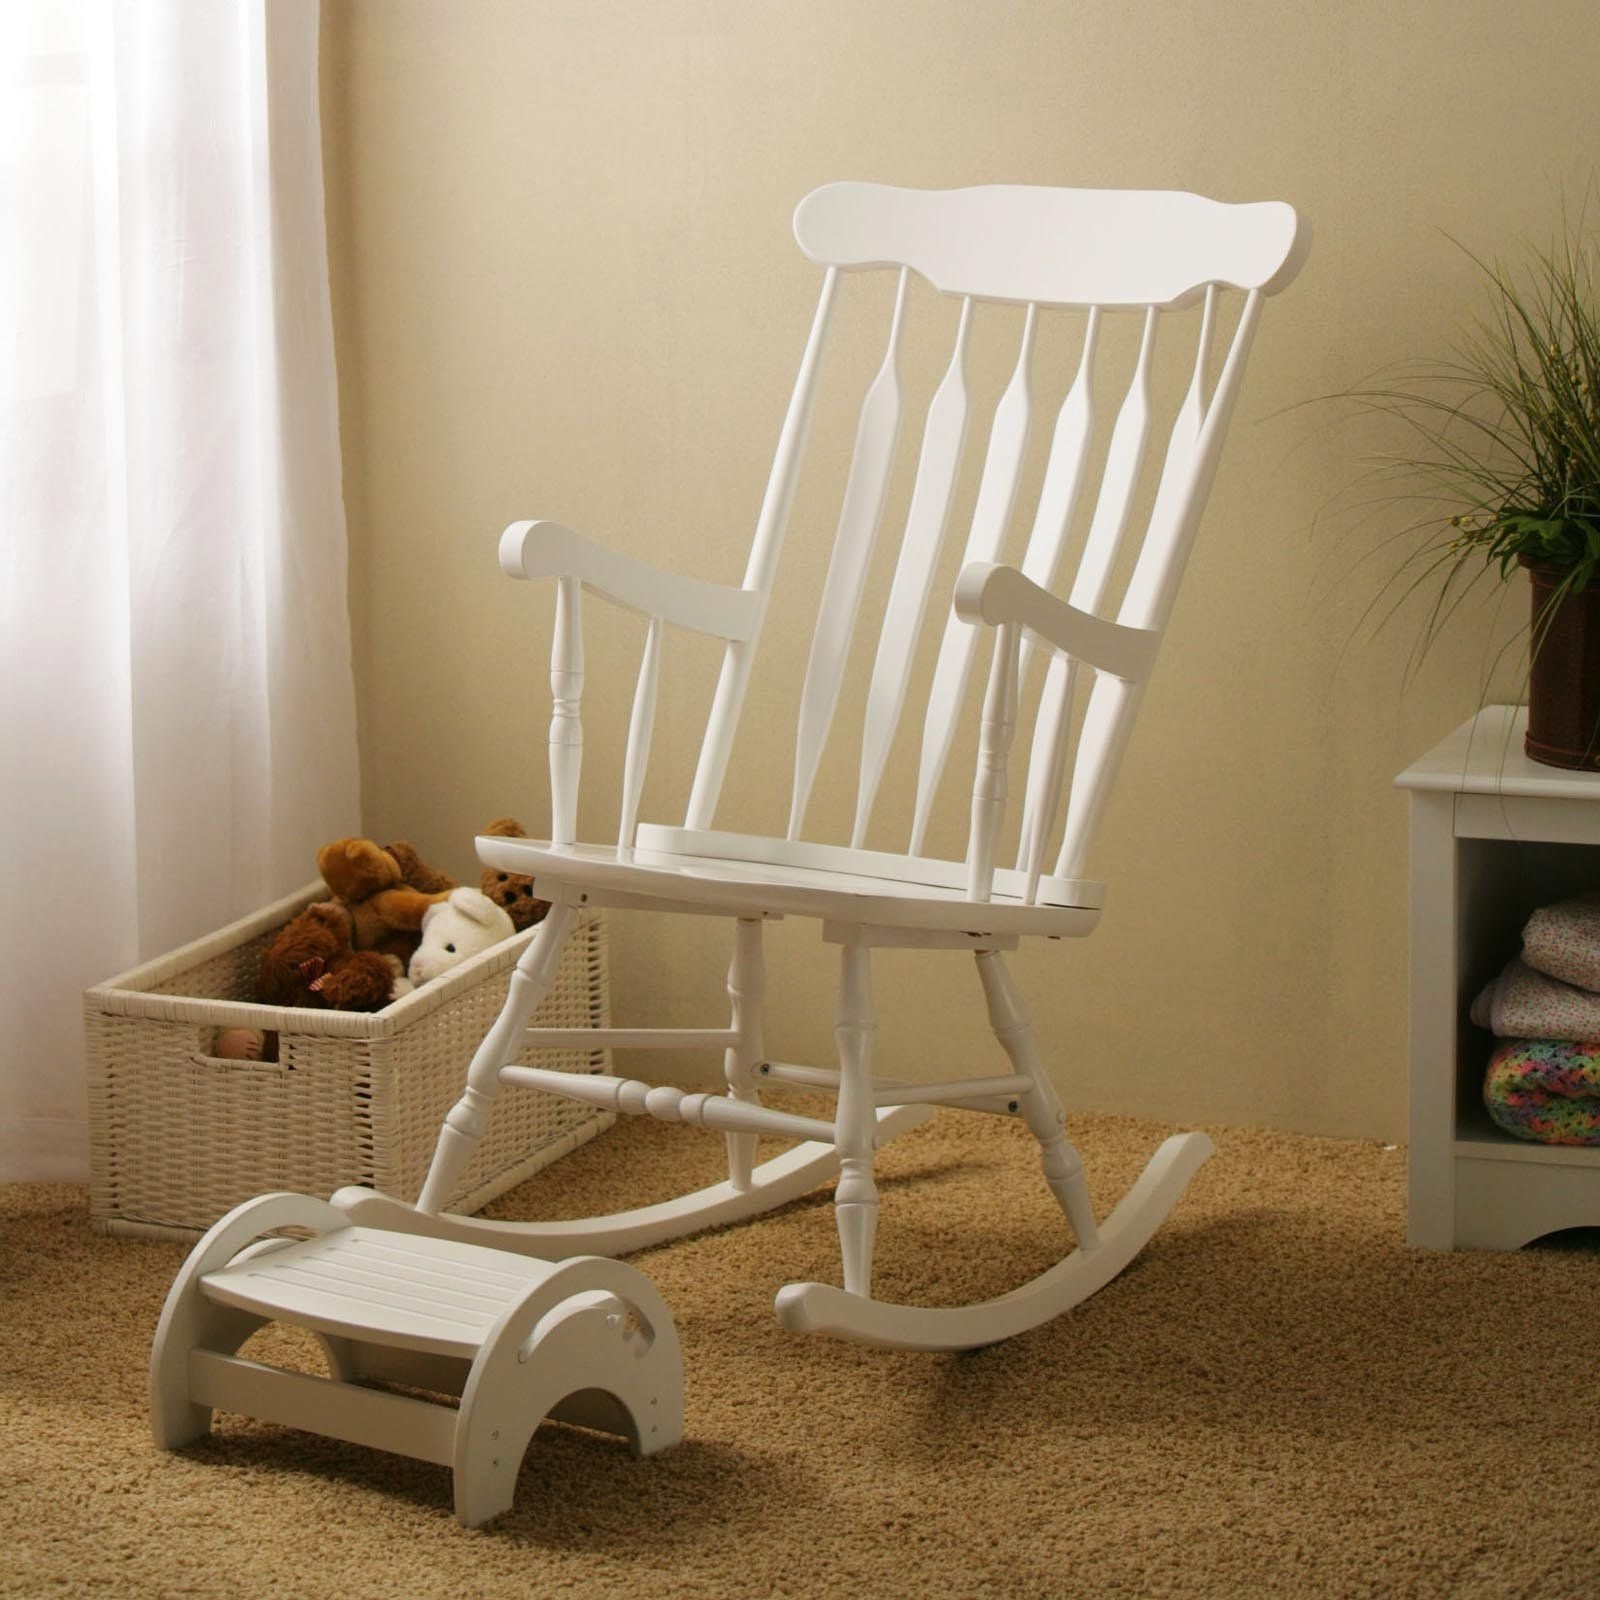 White Wicker Rocking Chair For Nursery For Most Current Rocking A Newborn Baby To Sleep In A Comfy Nursery Chair Is A Great (View 2 of 20)